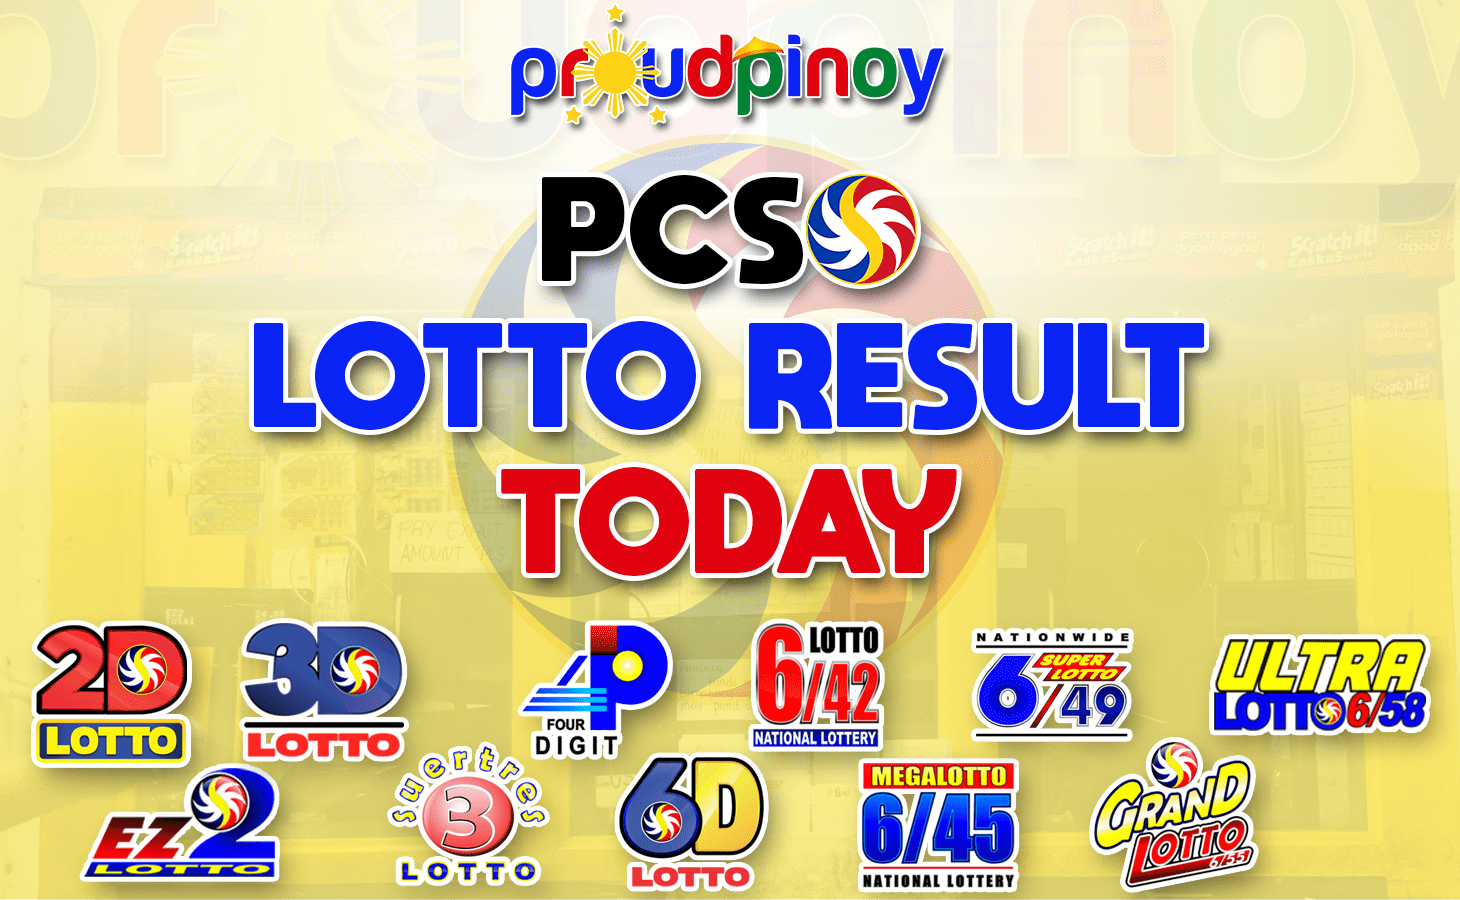 LOTTO RESULT TODAY October 20, 2021 - Official PCSO Lotto Results